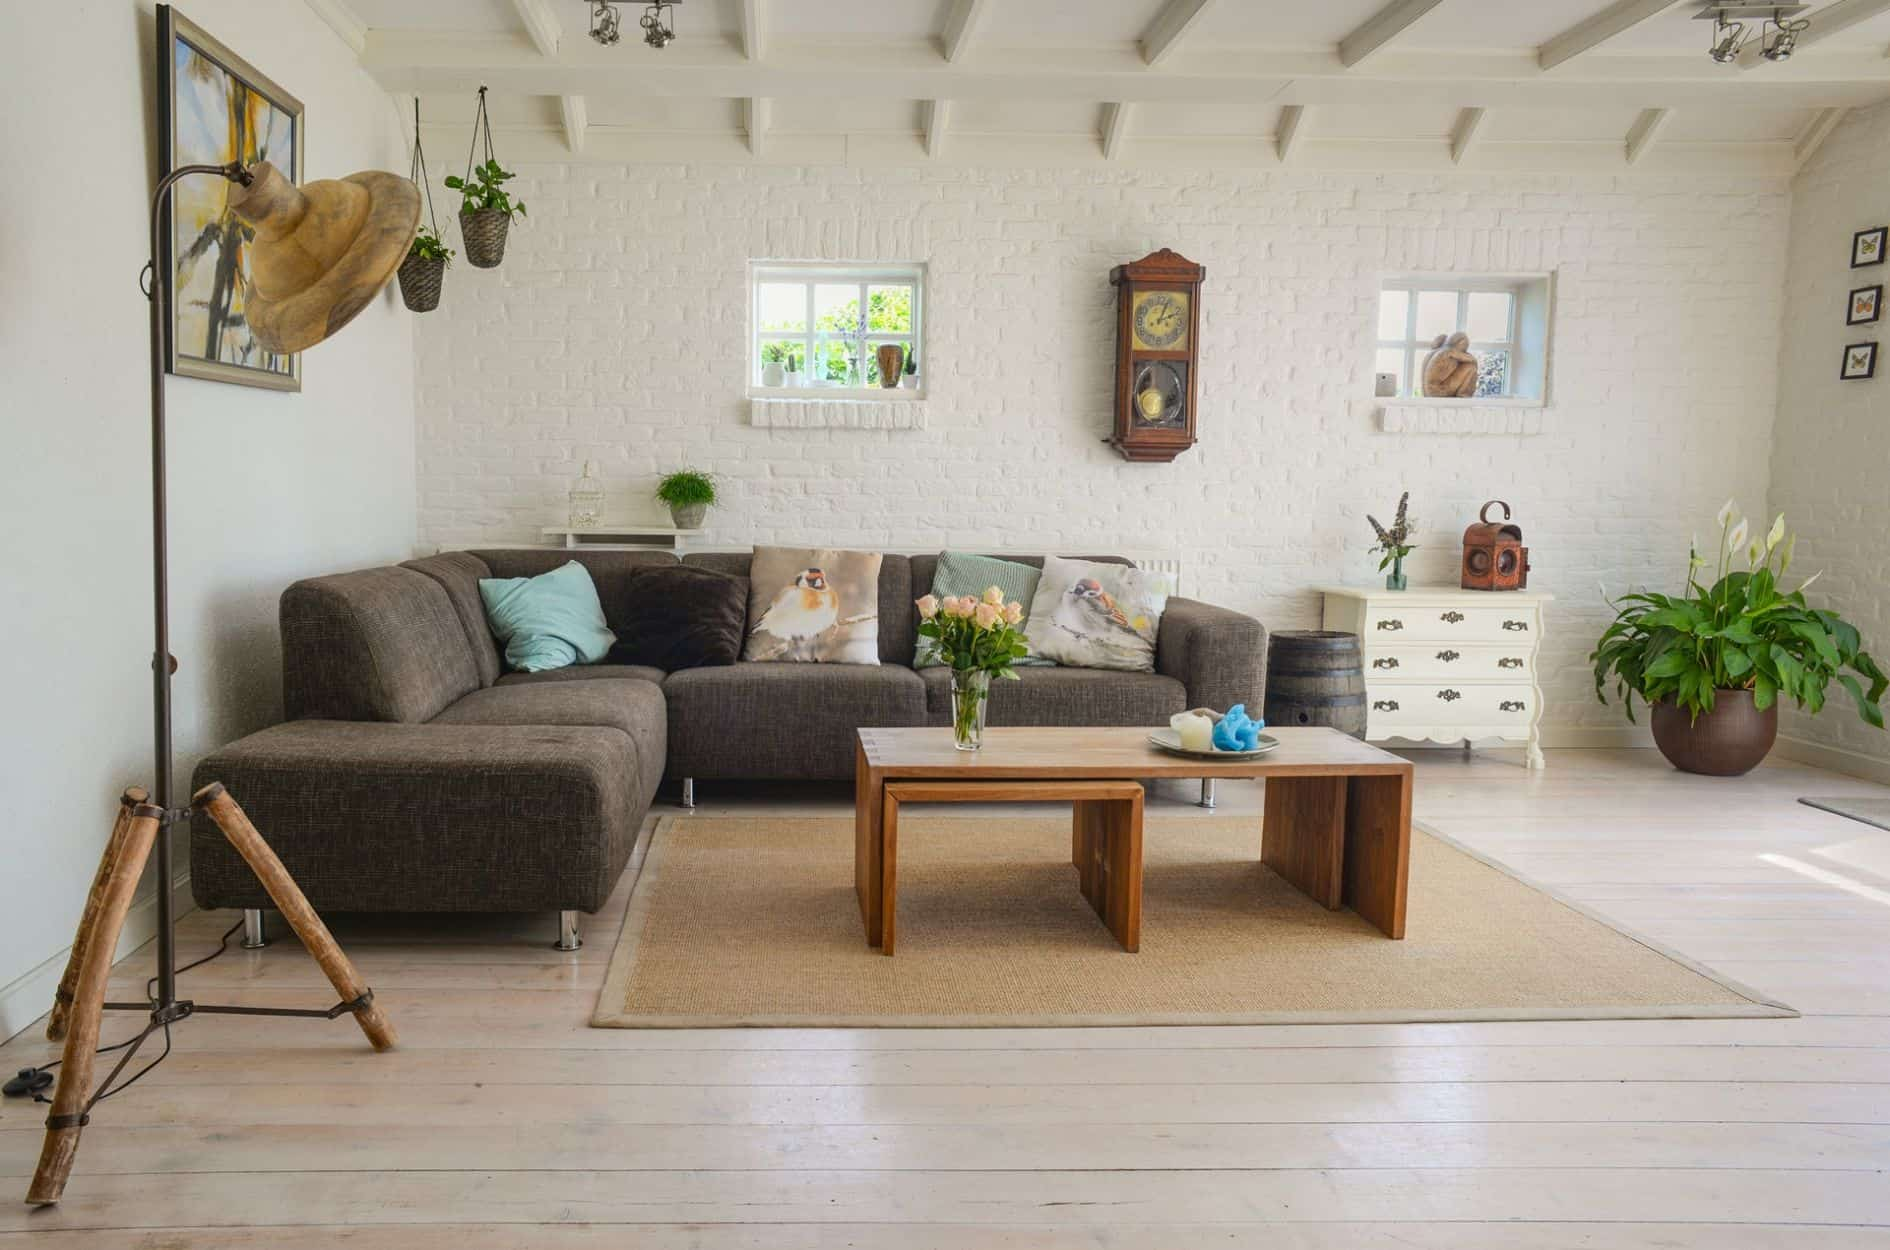 Los Angeles real estate blog - A beautiful living room